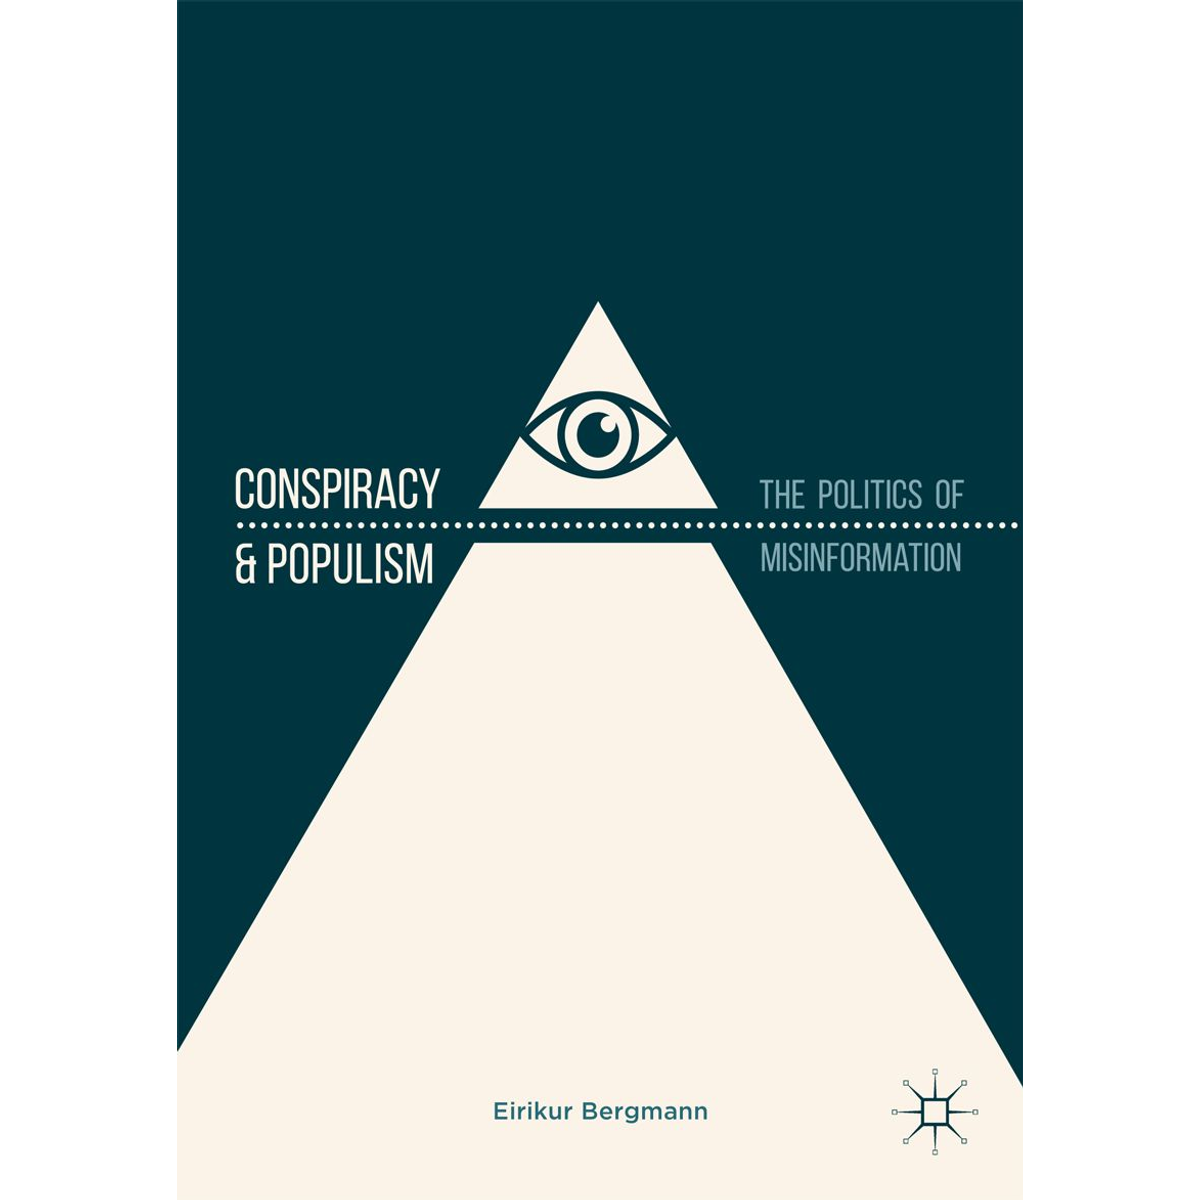 Conspiracy & Populism - The Politics of Misinformation